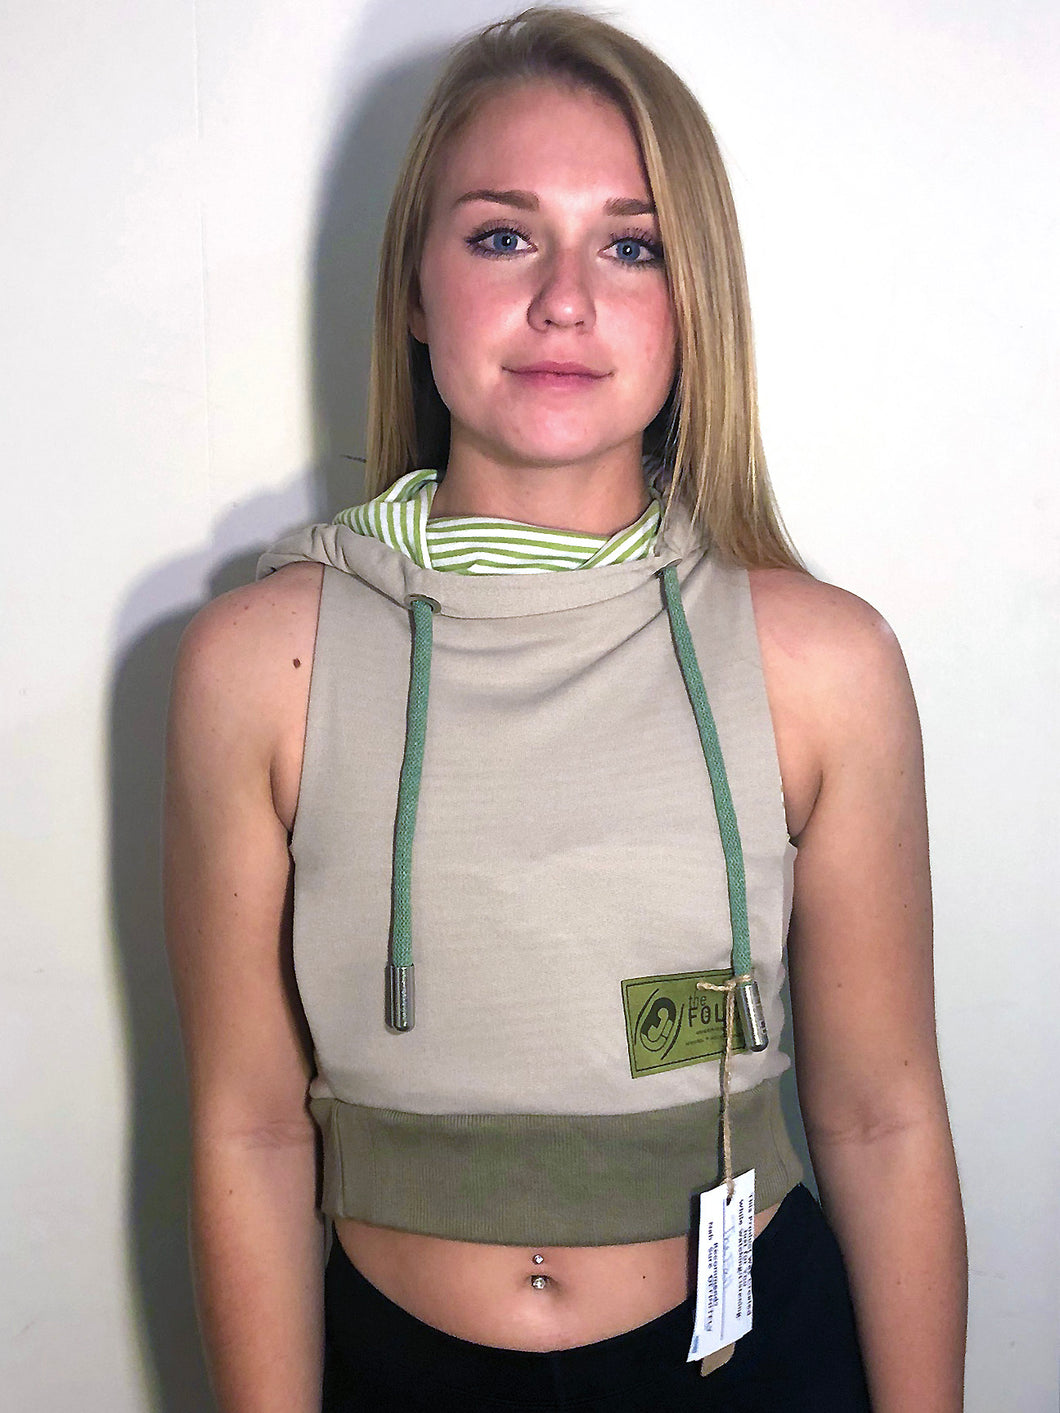 XS/SM Crop Hood Jacket: Light Tan Light Weight Knit Lined with Green and White Stripes